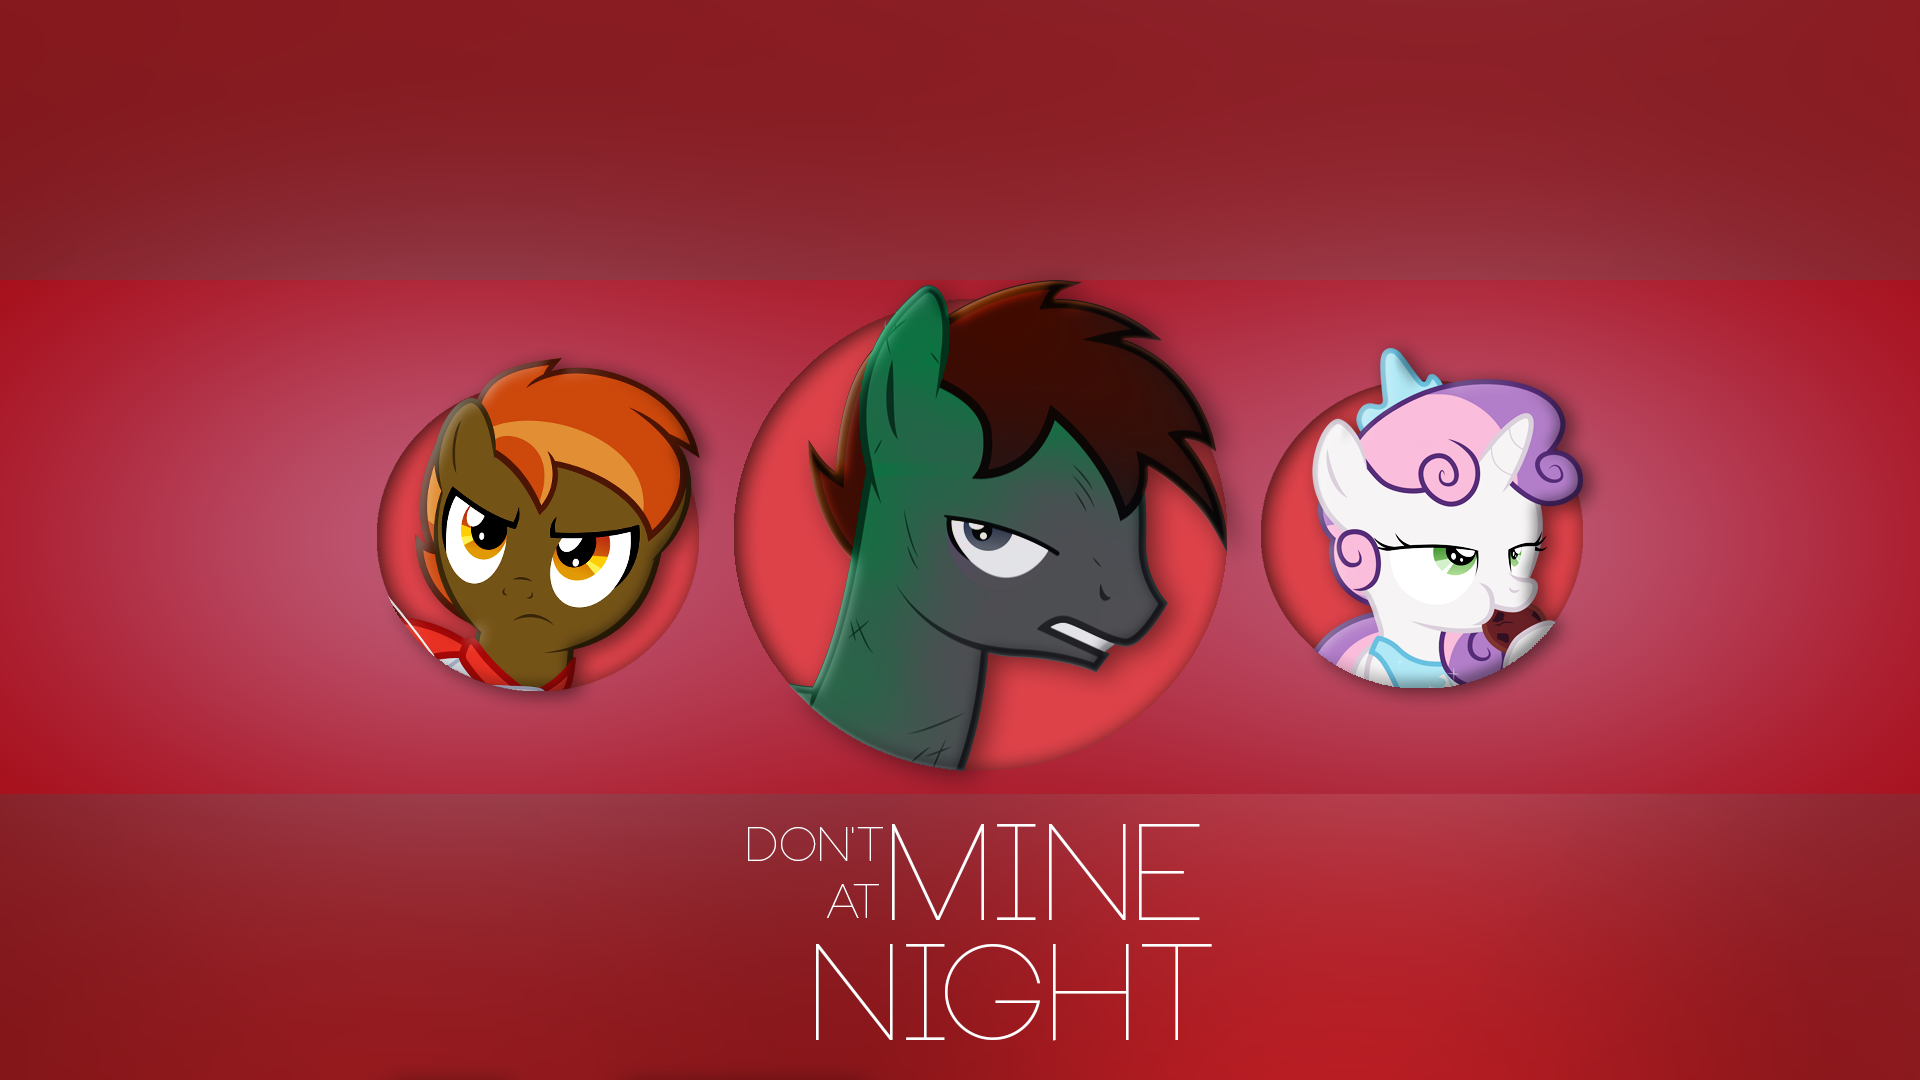 Don't Mine at Night - Wallpaper by Rainbowb4sh, Stainless33, Starbolt-81 and Tyto-OvO